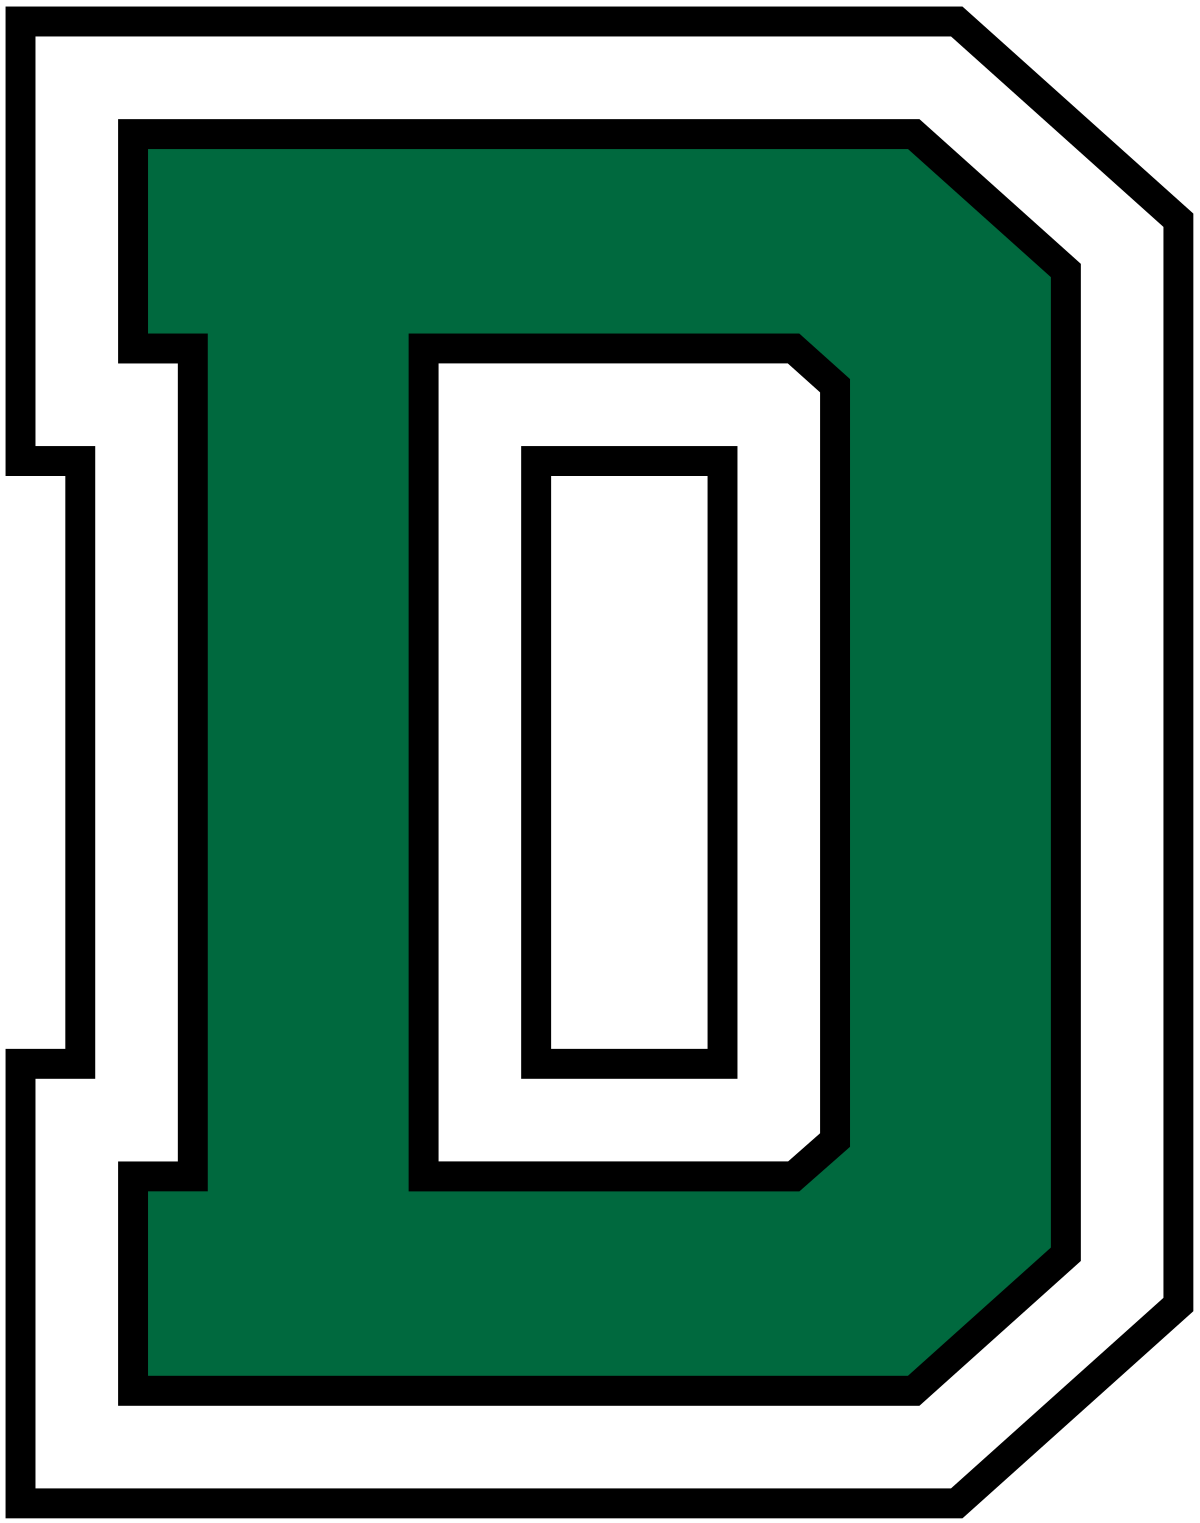 Mark clipart big green. Dartmouth women s ice